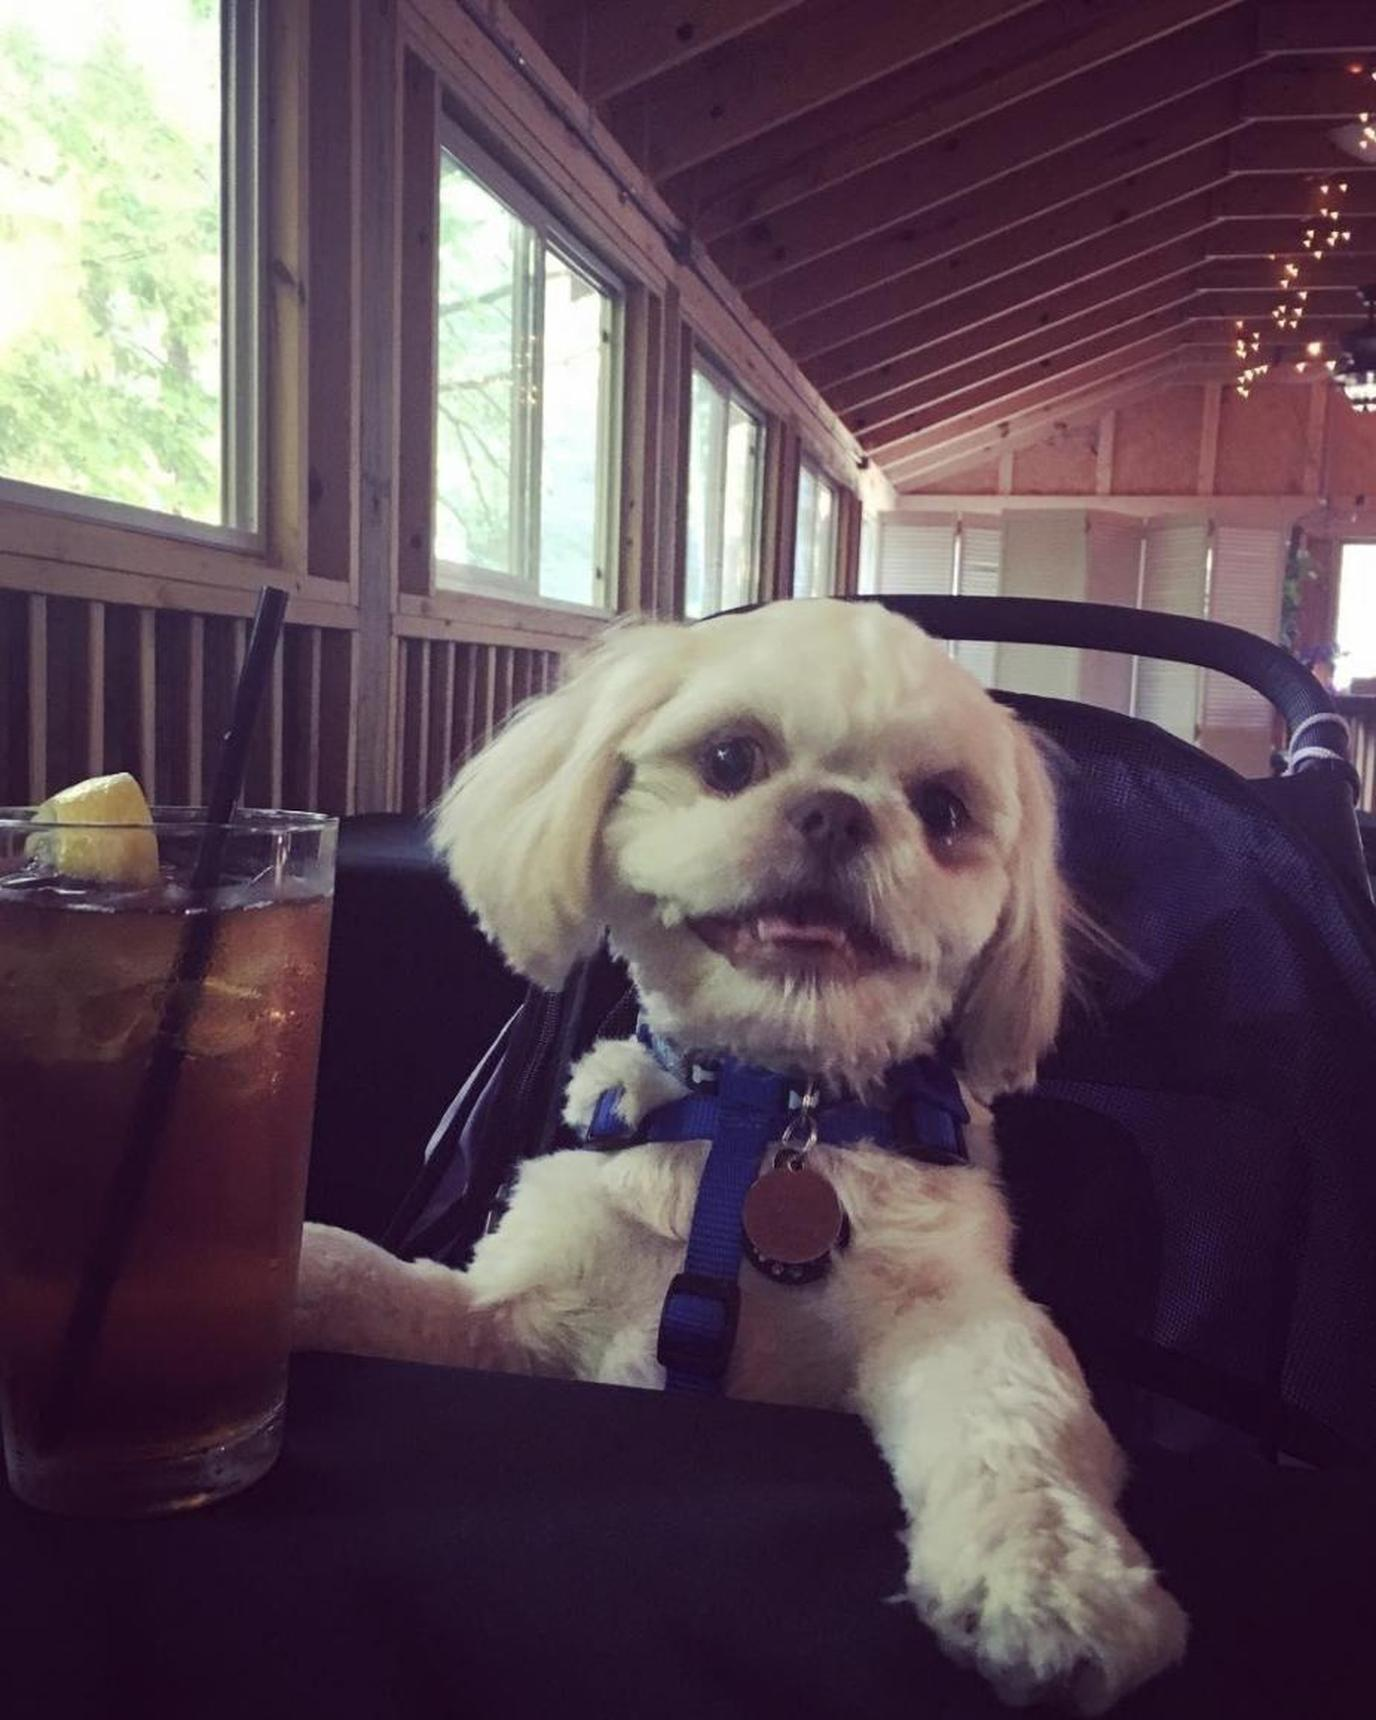 A dog relaxes in the indoor patio at Crystelle Creek, a pet-friendly restaurant.